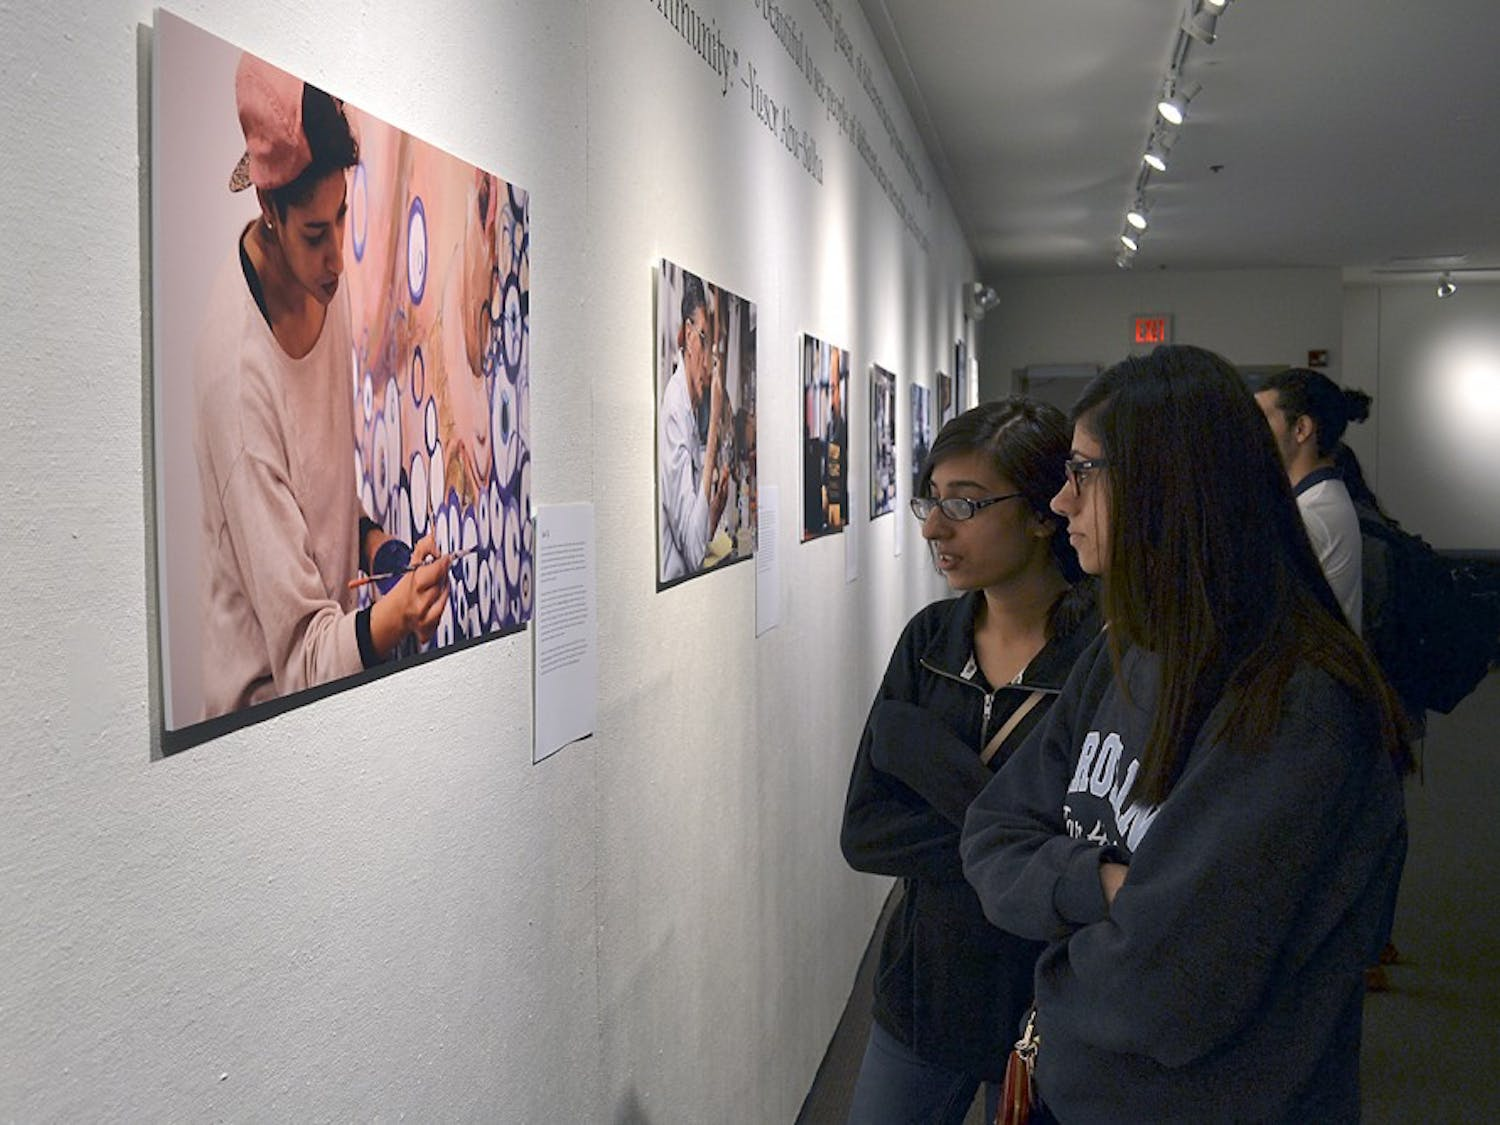 Sophomore biology majors Seher Khalid (Left), from High Point, and Noor Baloch, from Cary, display the gallery reception: Passion in Practice in the Union on Wednesday evening.